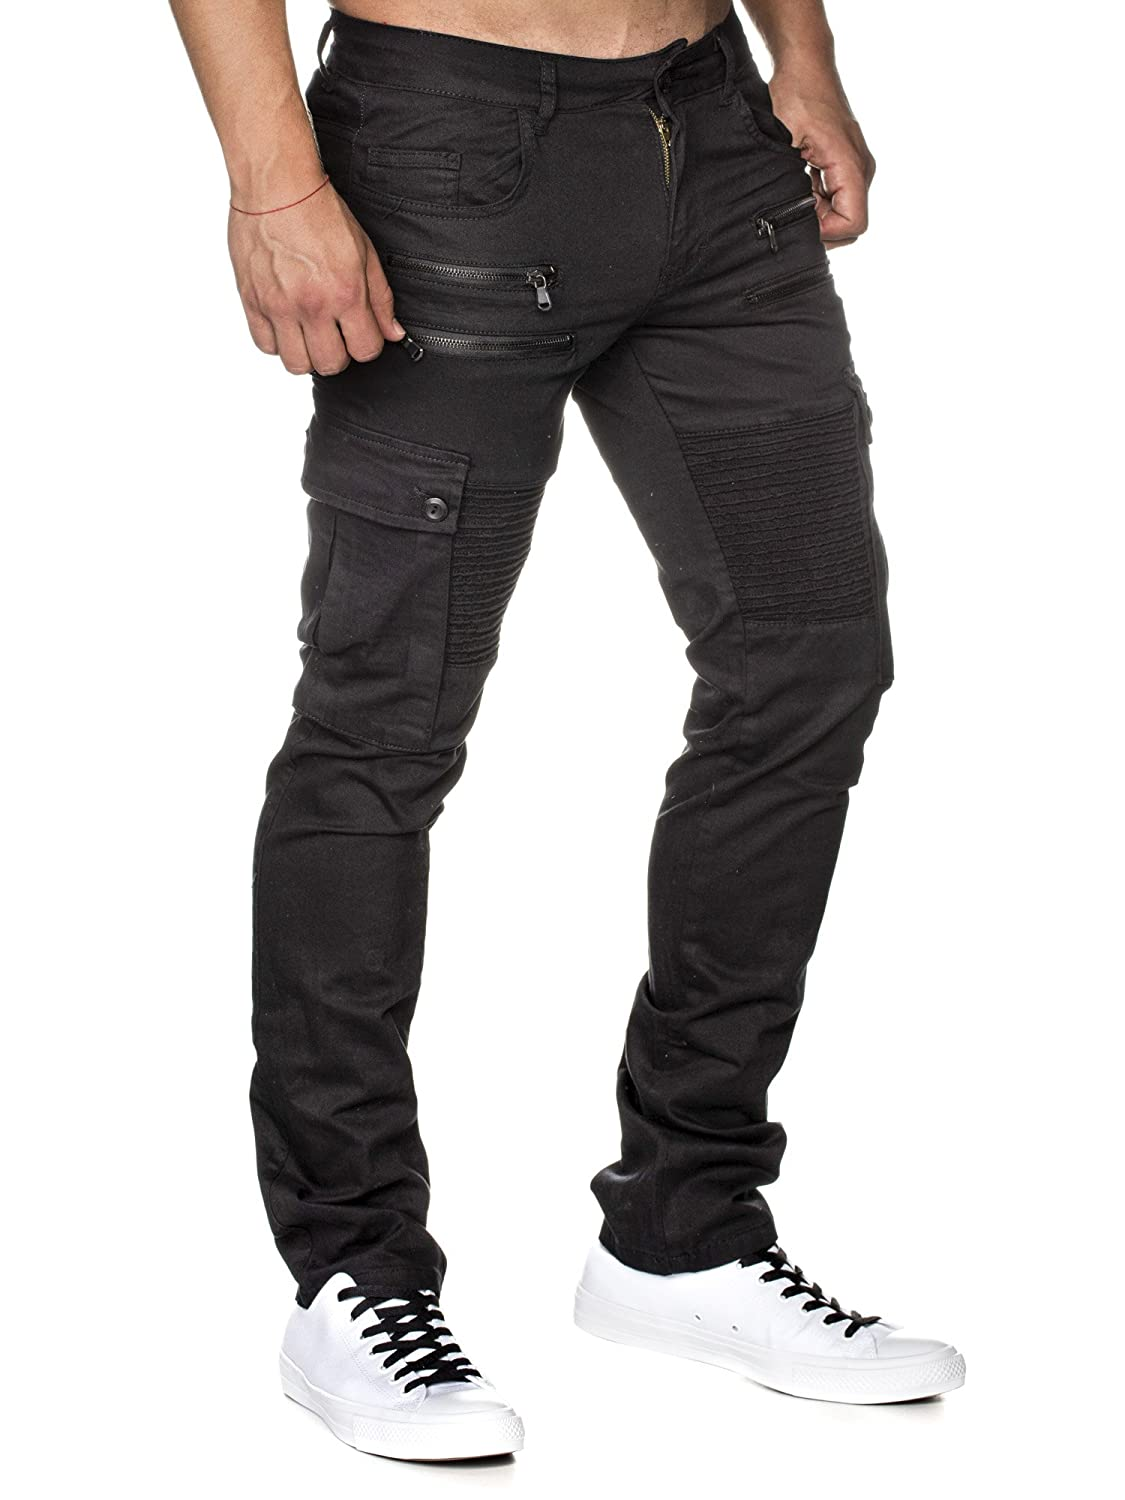 55a59c3aca63 Tazzio Slim Fit Biker Style Herren Stretch Chino Hose Denim 16507 Schwarz  33 32  Amazon.de  Bekleidung